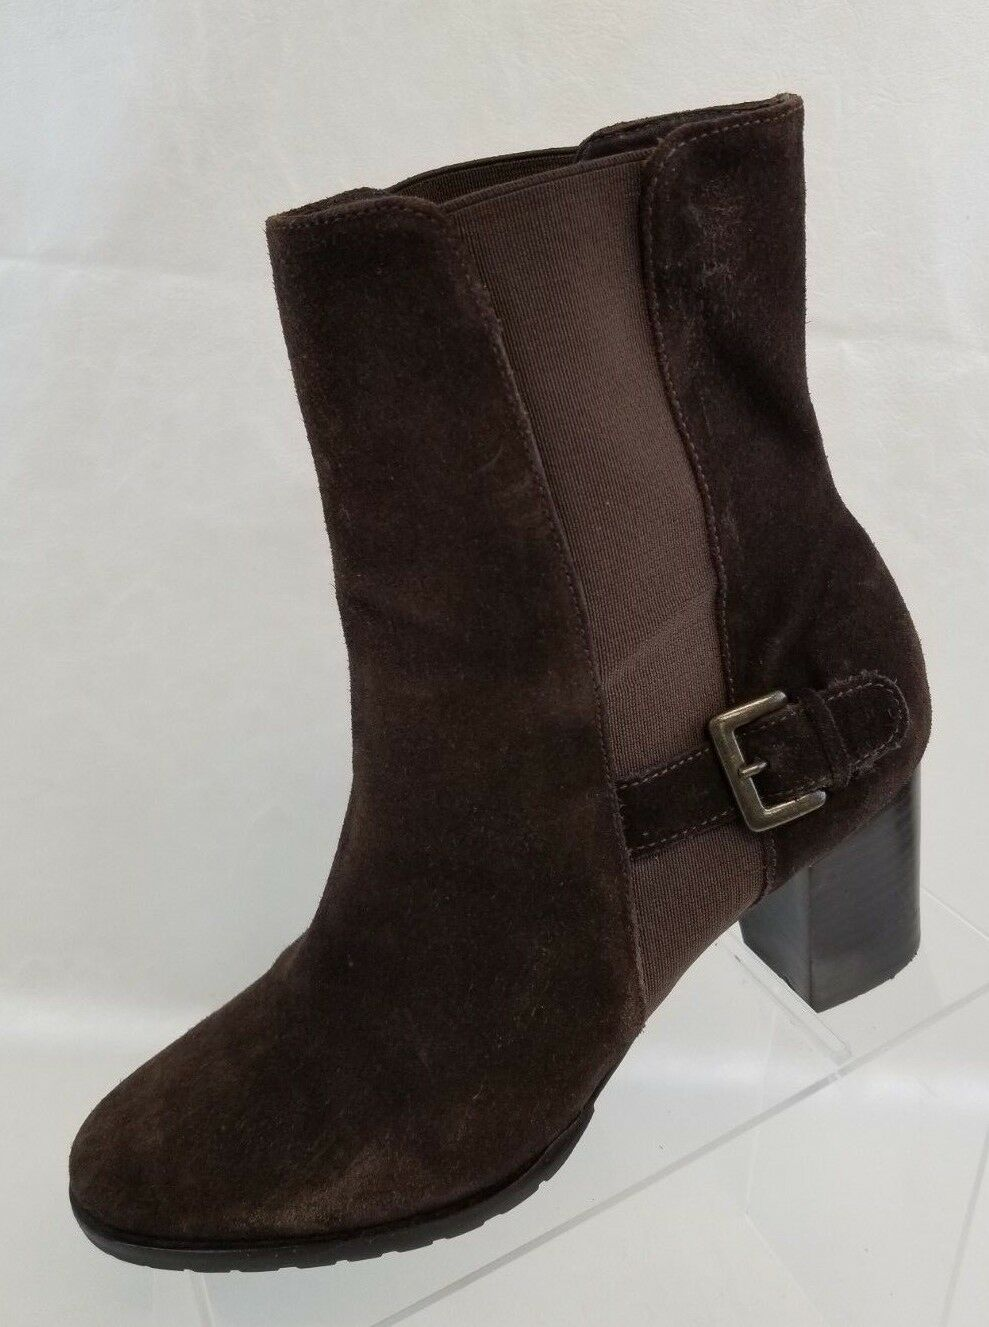 Cole Haan MISMATCH Ankle Boots Womens Brown Leather Pull On Size L 8.5B R 8B